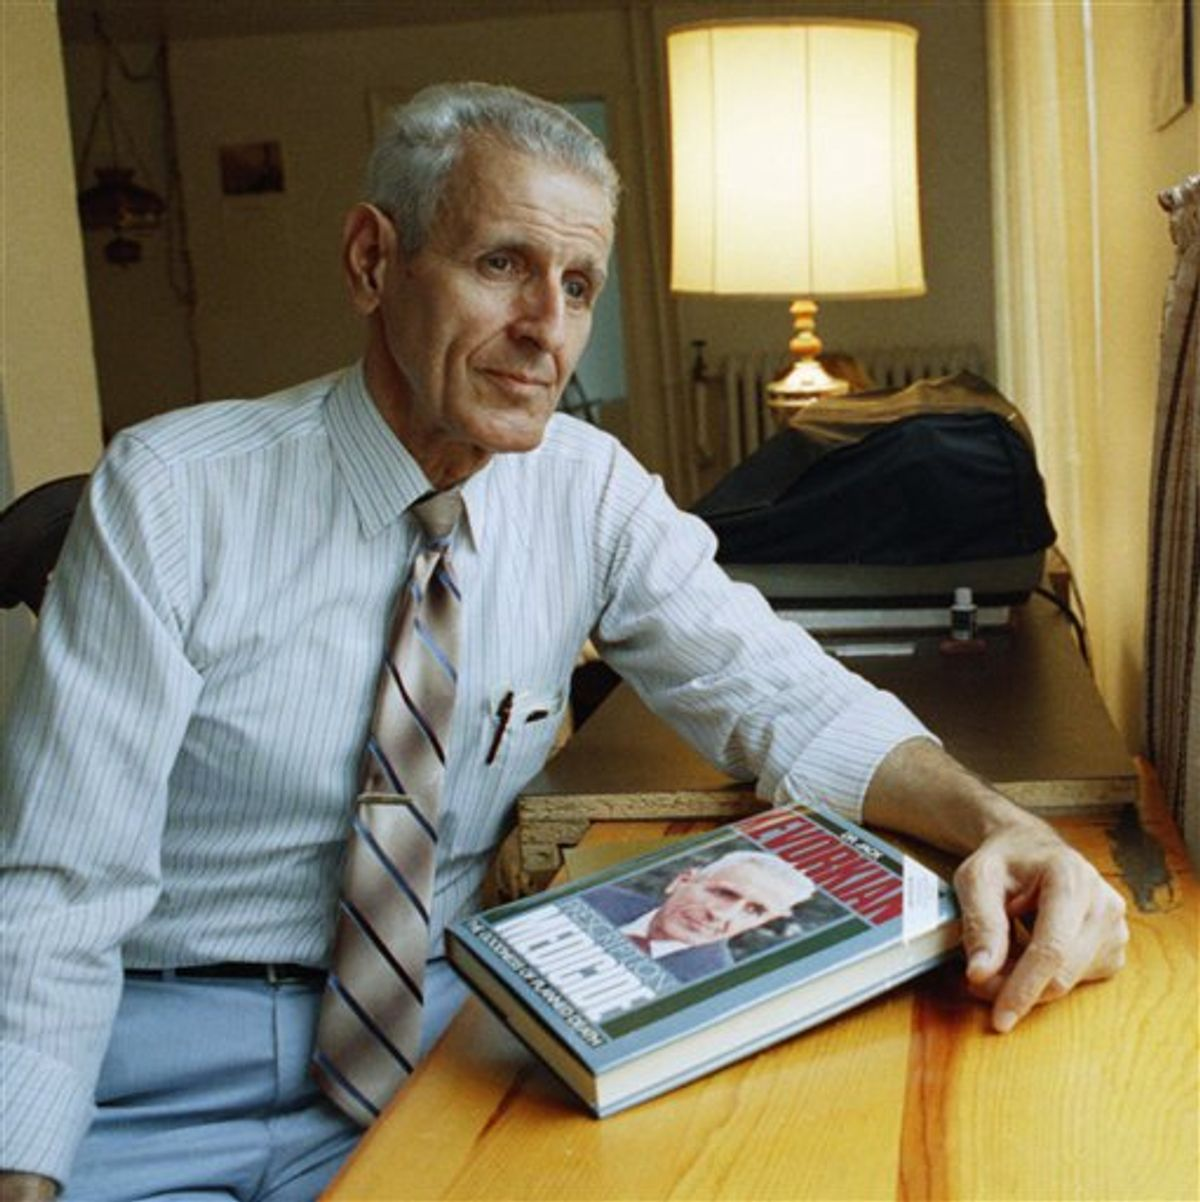 FILE  In this Aug. 10, 1991 photo, Dr. Jack Kevorkian, inventor of the controversial suicide machine, sits with his just release book, Prescription: Medicide,  in Royal Oak, Mich.  A lawyer and friend of  Kevorkian says the assisted suicide advocate has died at a Detroit-area hospital at the age of 83.  Mayer Morganroth tells The Associated Press that Kevorkian died Friday, June 3, 2011 at William Beaumont Hospital in Royal Oak, where he had been hospitalized.    Kevorkian had been hospitalized since last month with pneumonia and kidney problems.  (AP Photo/Lennox McLendon) (AP)